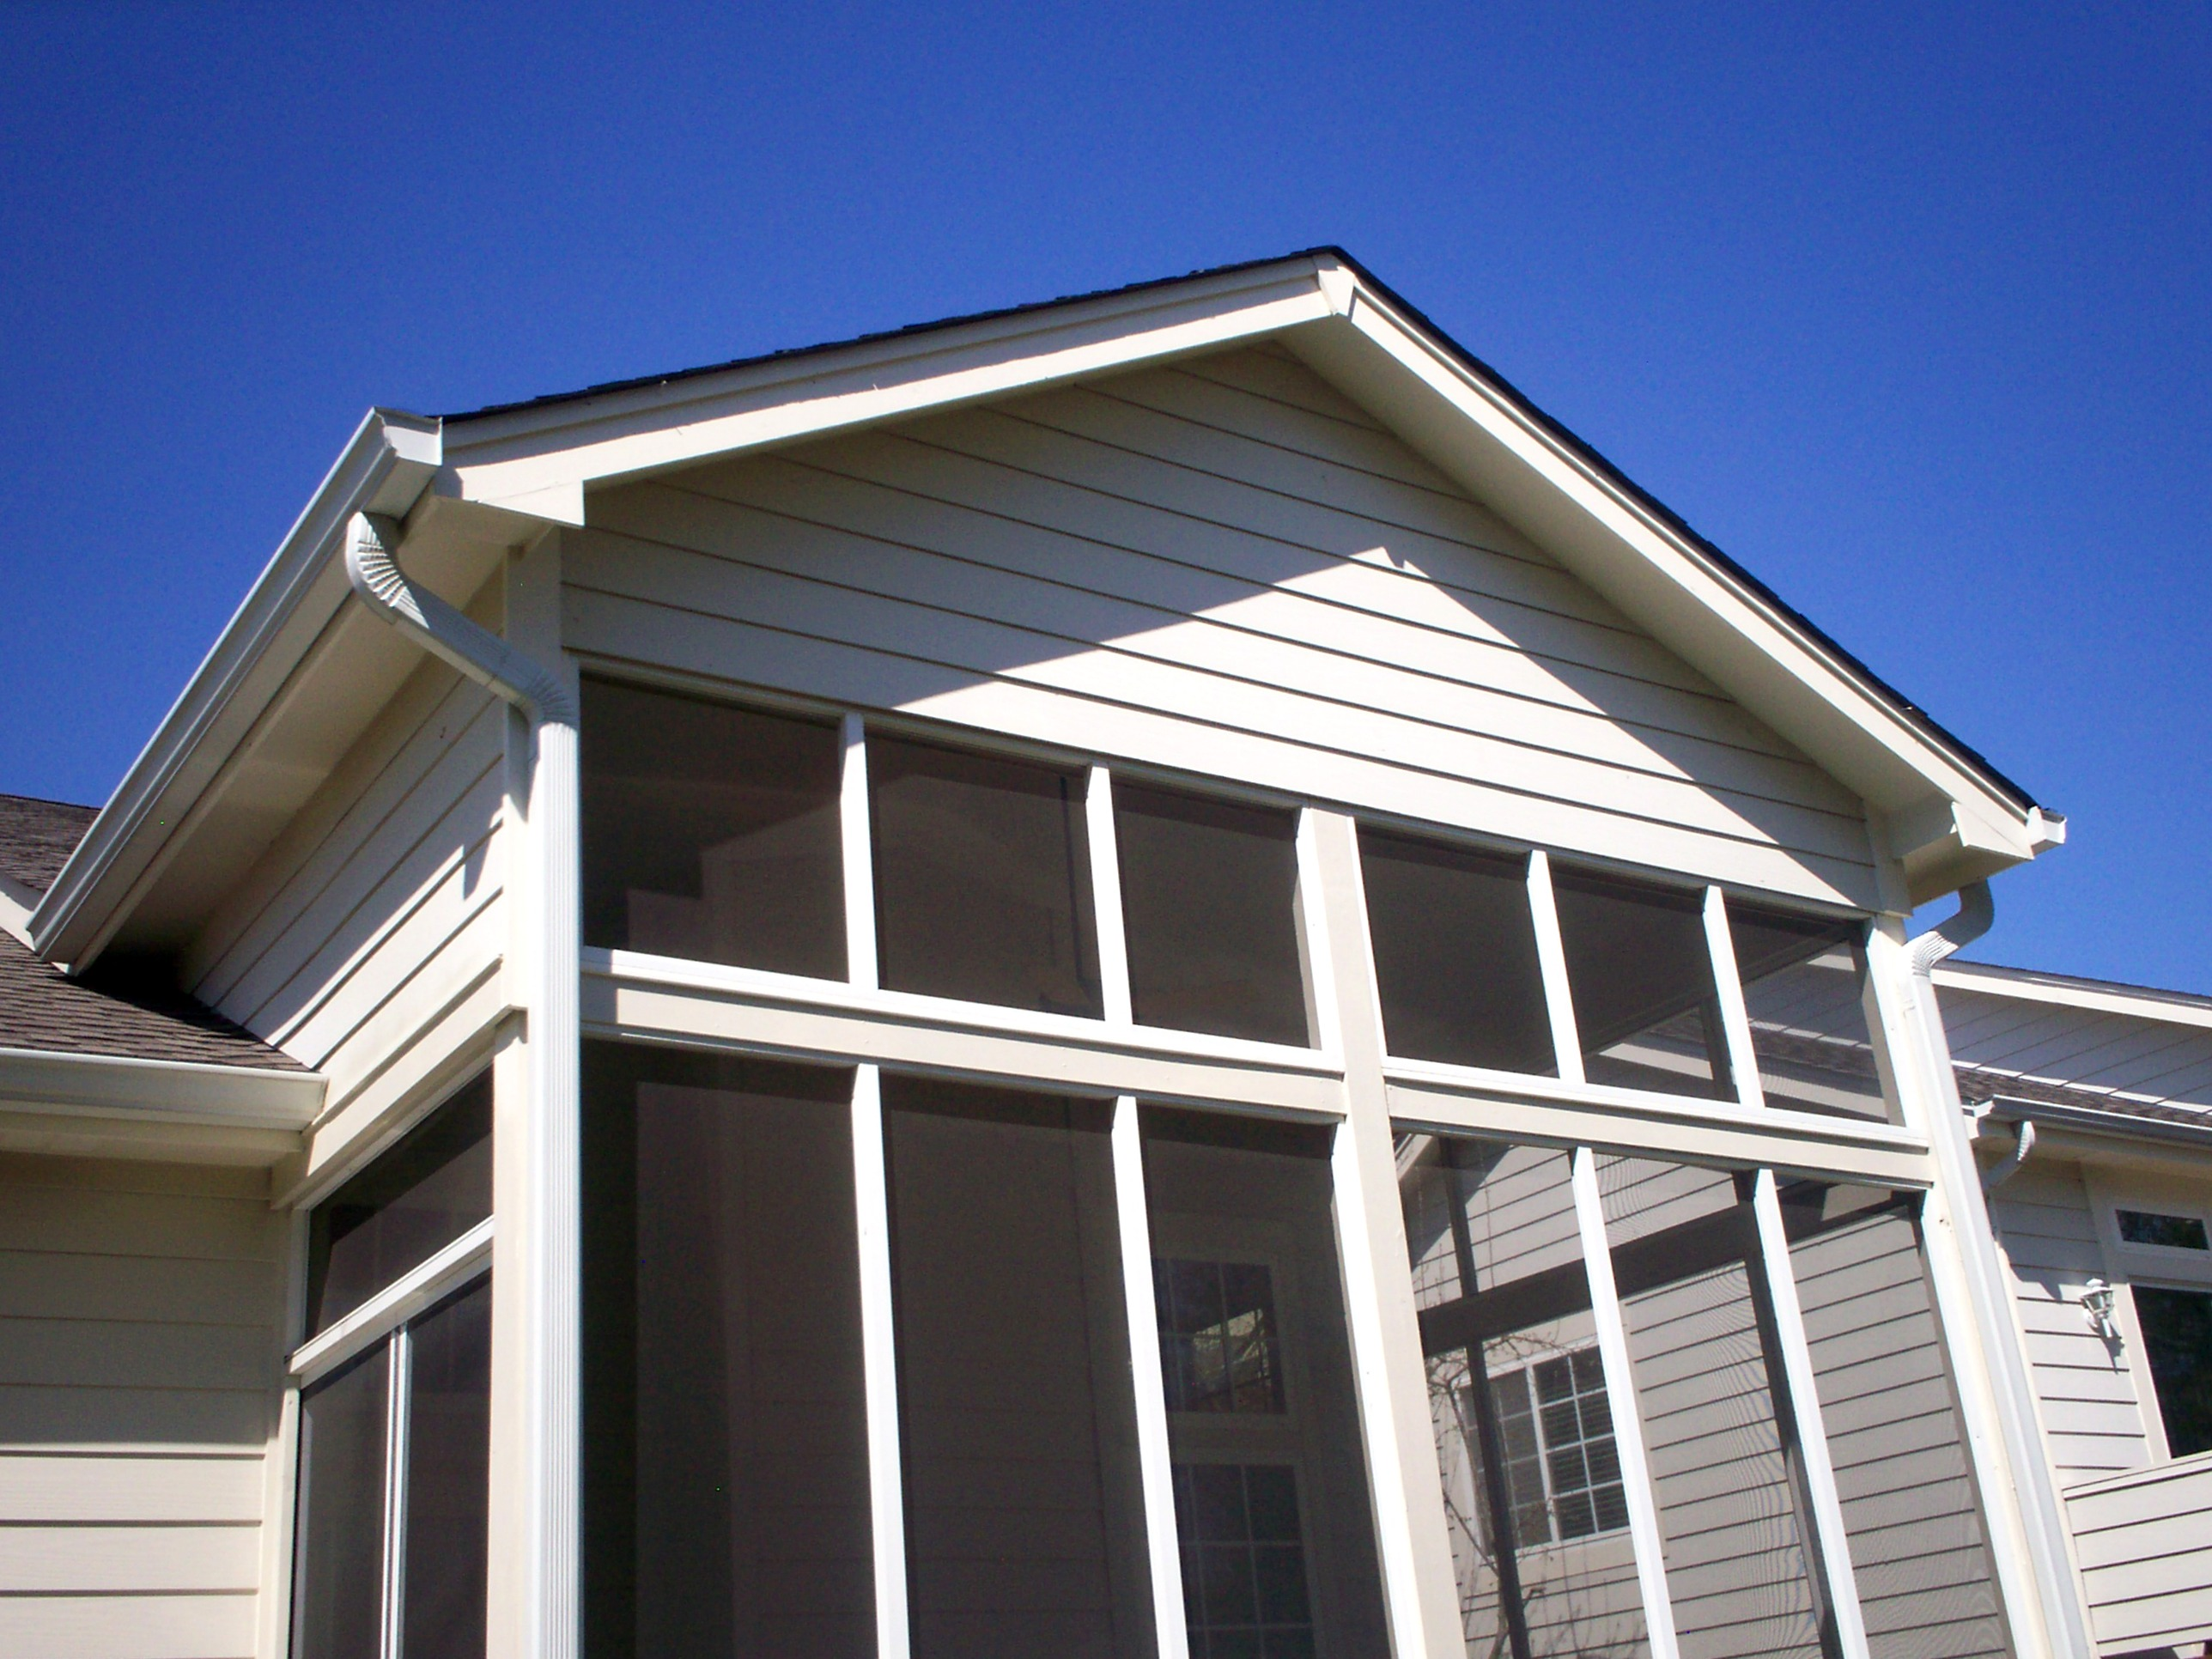 Pavilions st louis decks screened porches pergolas by for Screen porch roof options